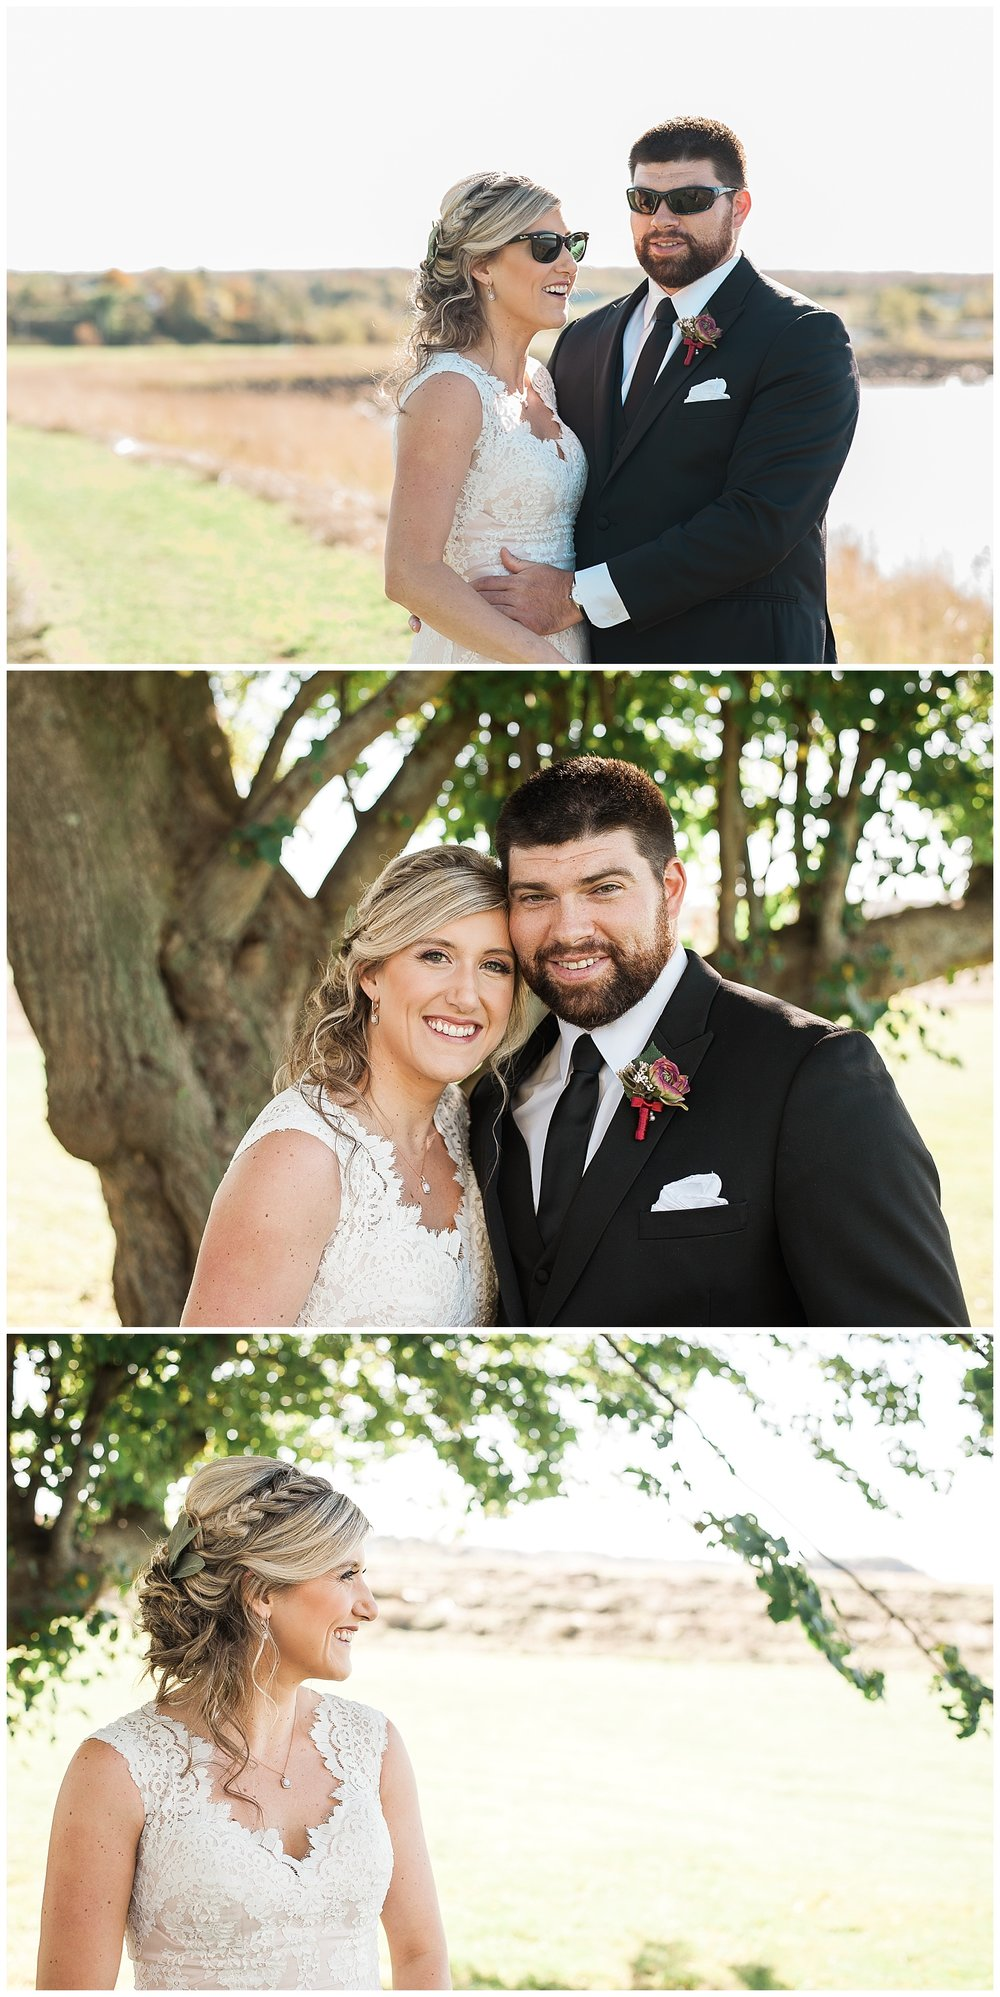 Courtney & Pat | Truro Wedding Photographer